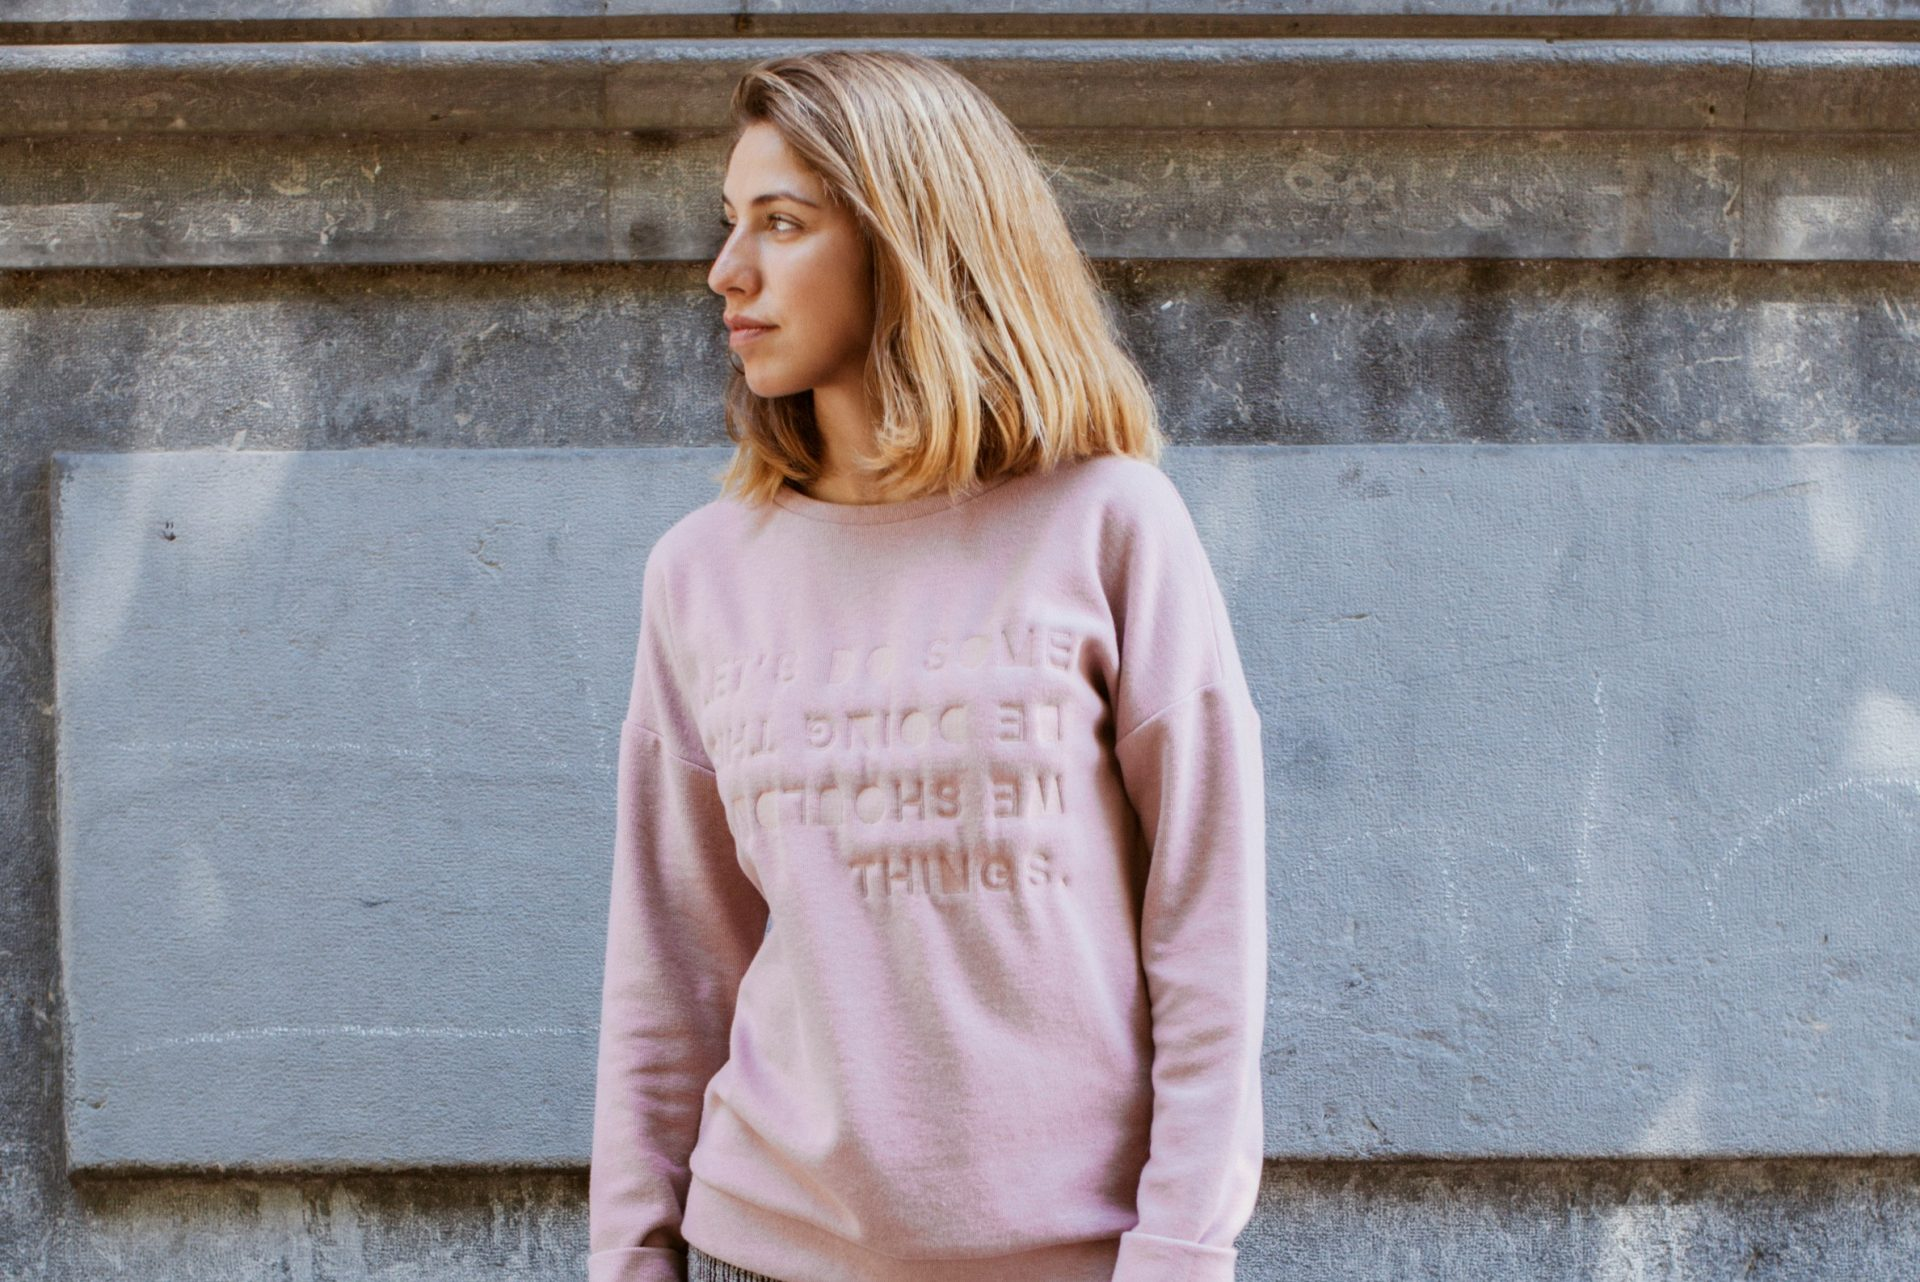 mujer rubia con jersey rosa